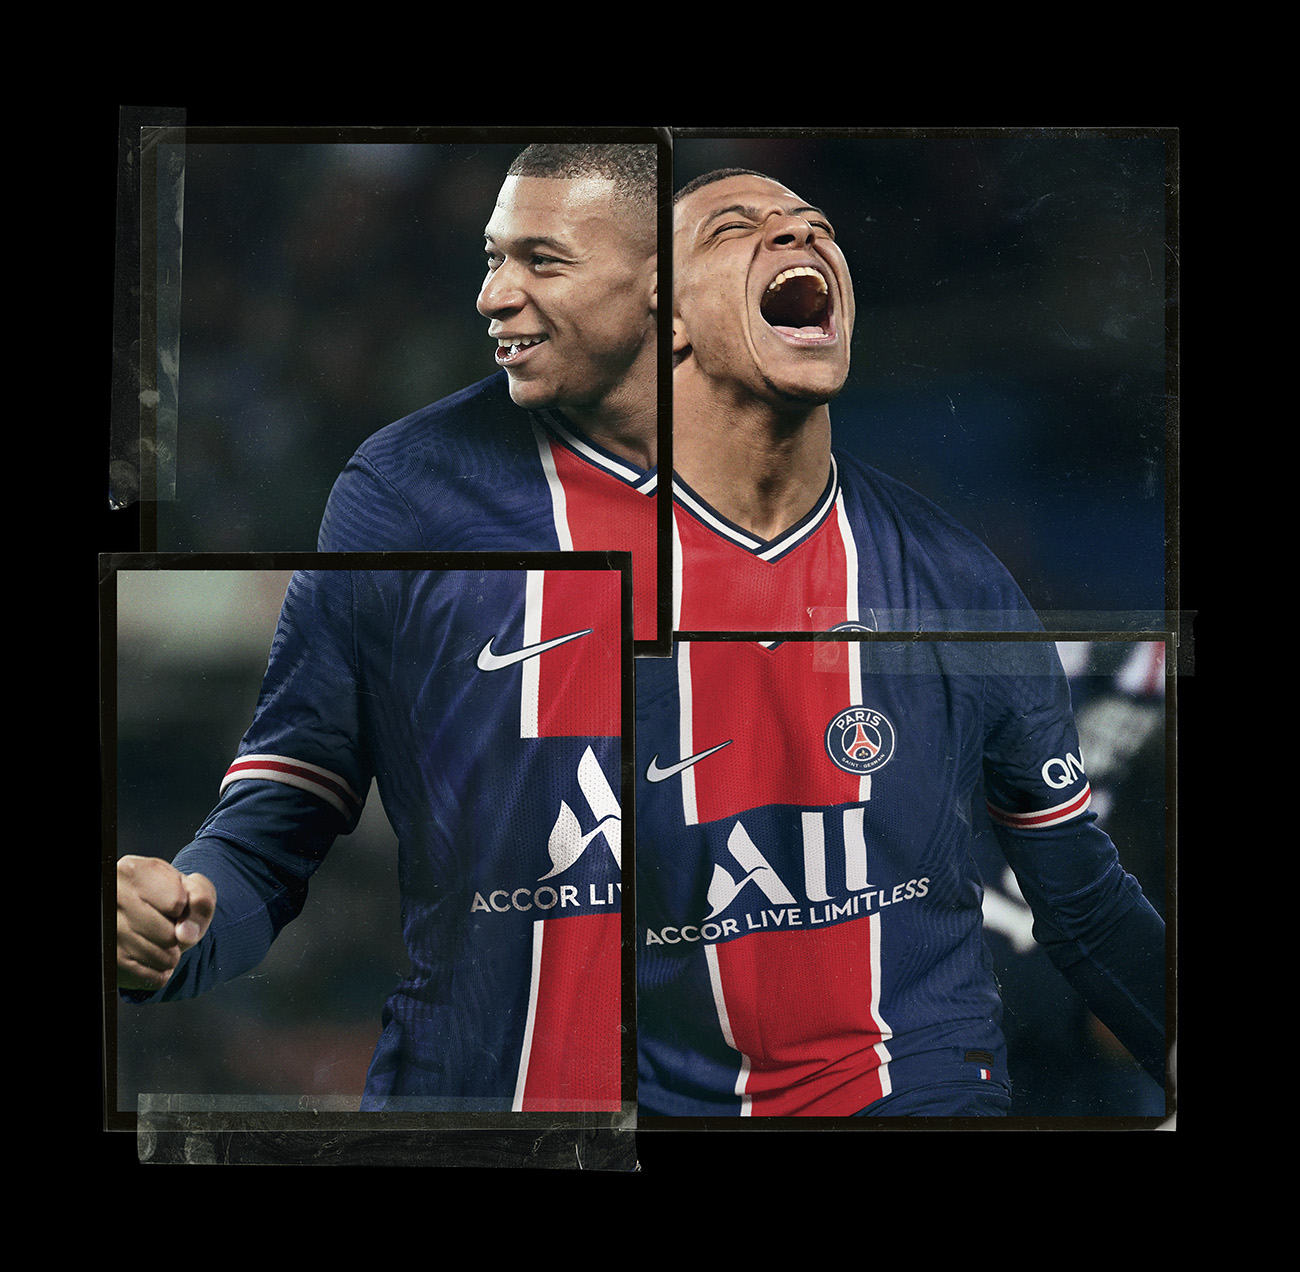 Nike Football x Paris Saint-Germain 2020-21 - Kylian Mbappé